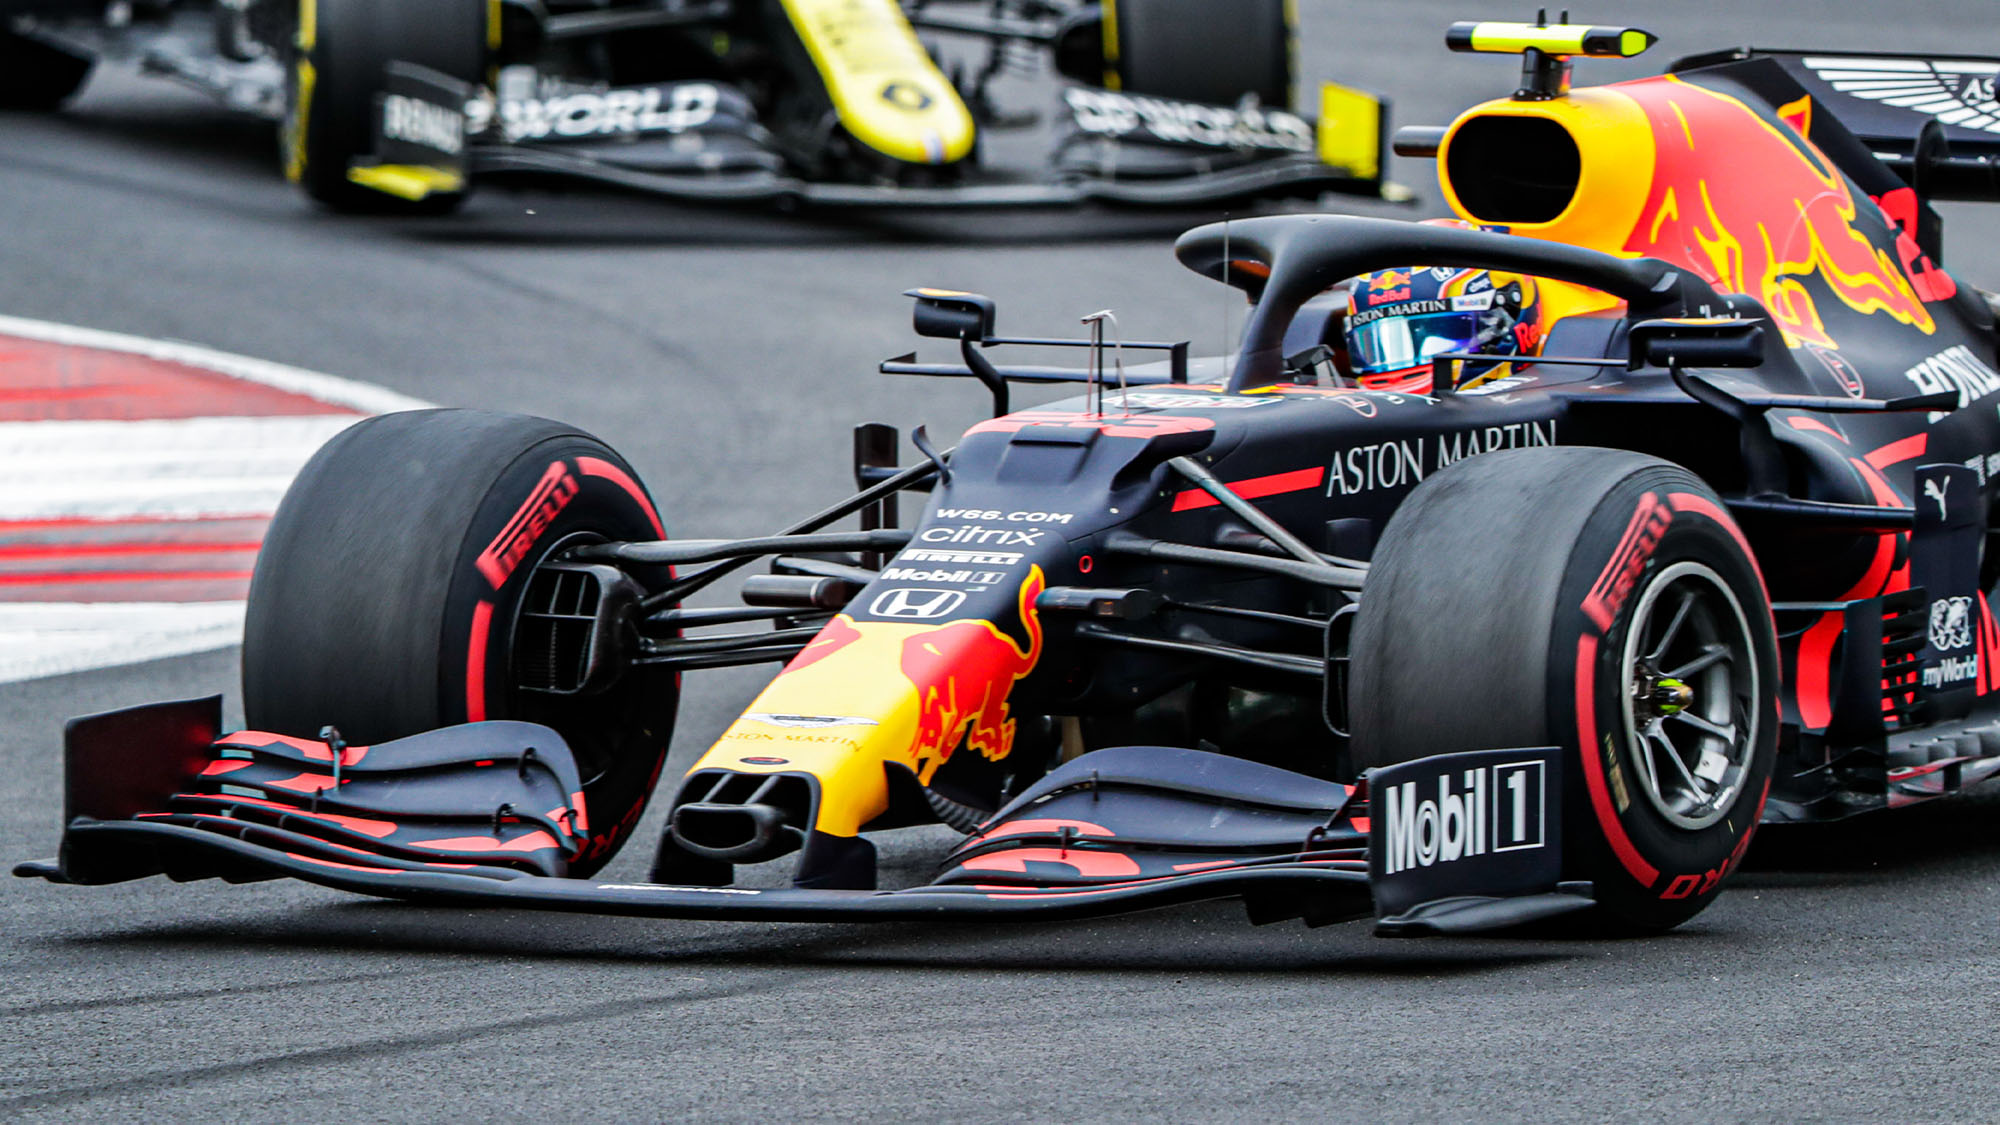 Alex Albon's Red Bull with soft tyres during the 2020 F1 Portuguese Grand Prix at Portimao